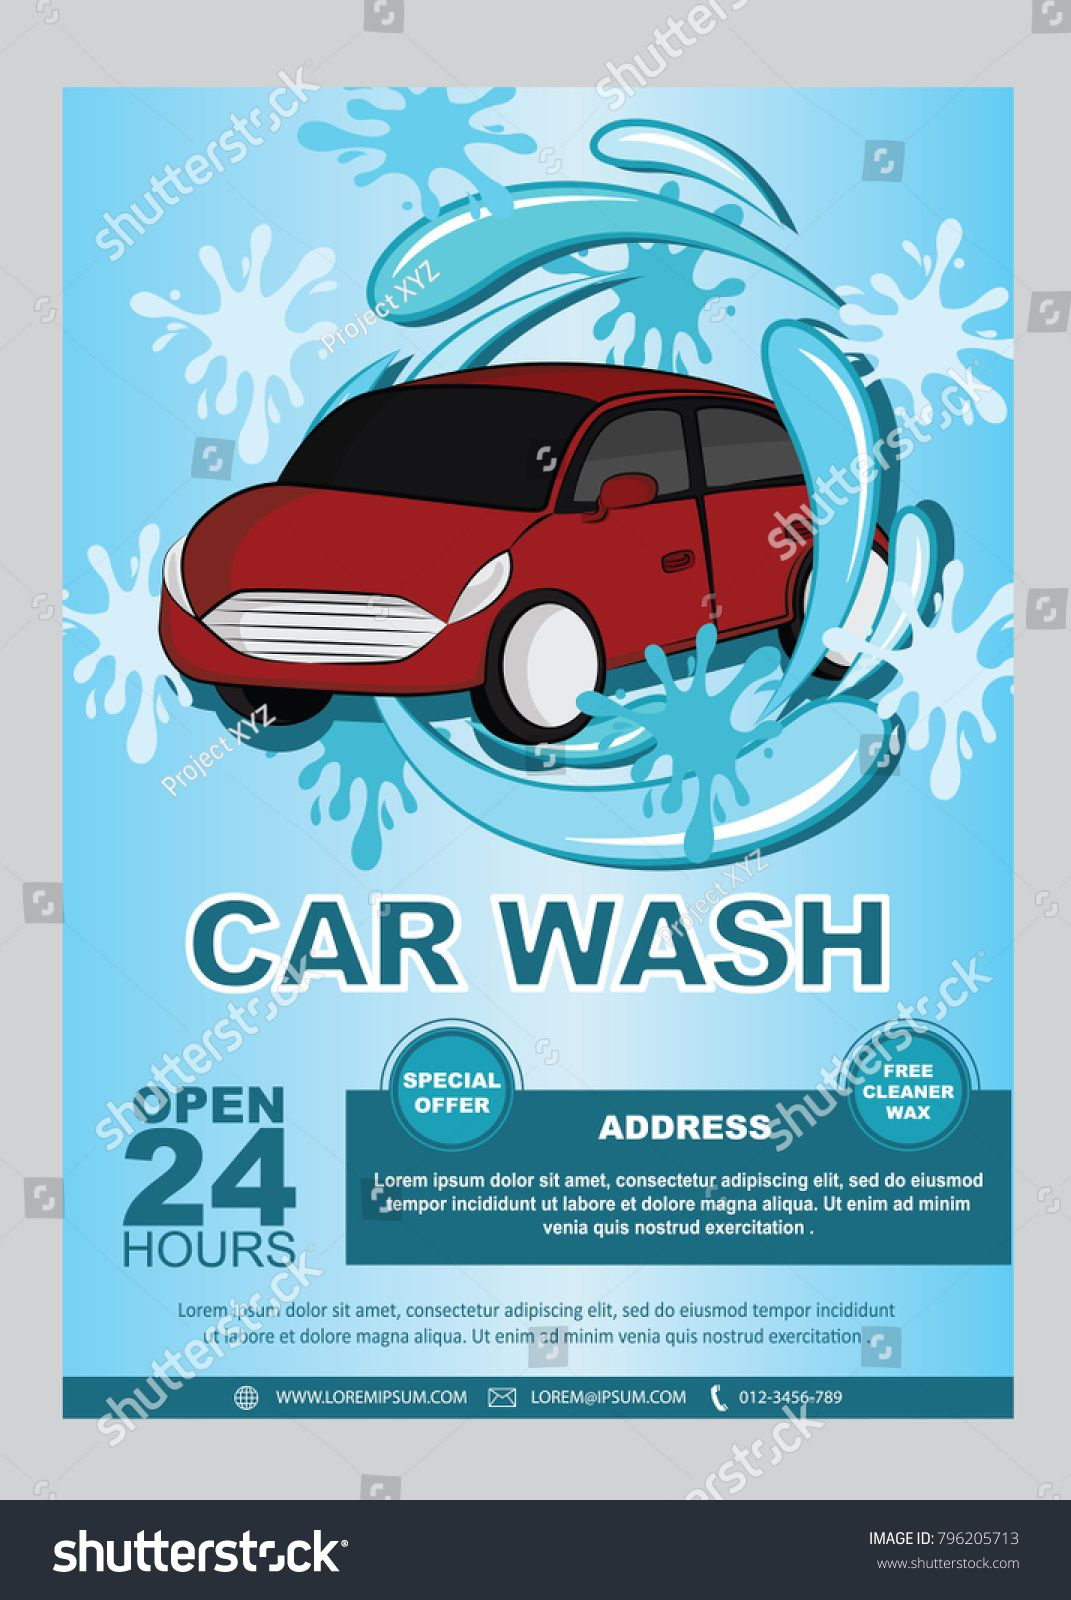 009 Magnificent Car Wash Flyer Template Concept  Free Fundraiser DownloadFull